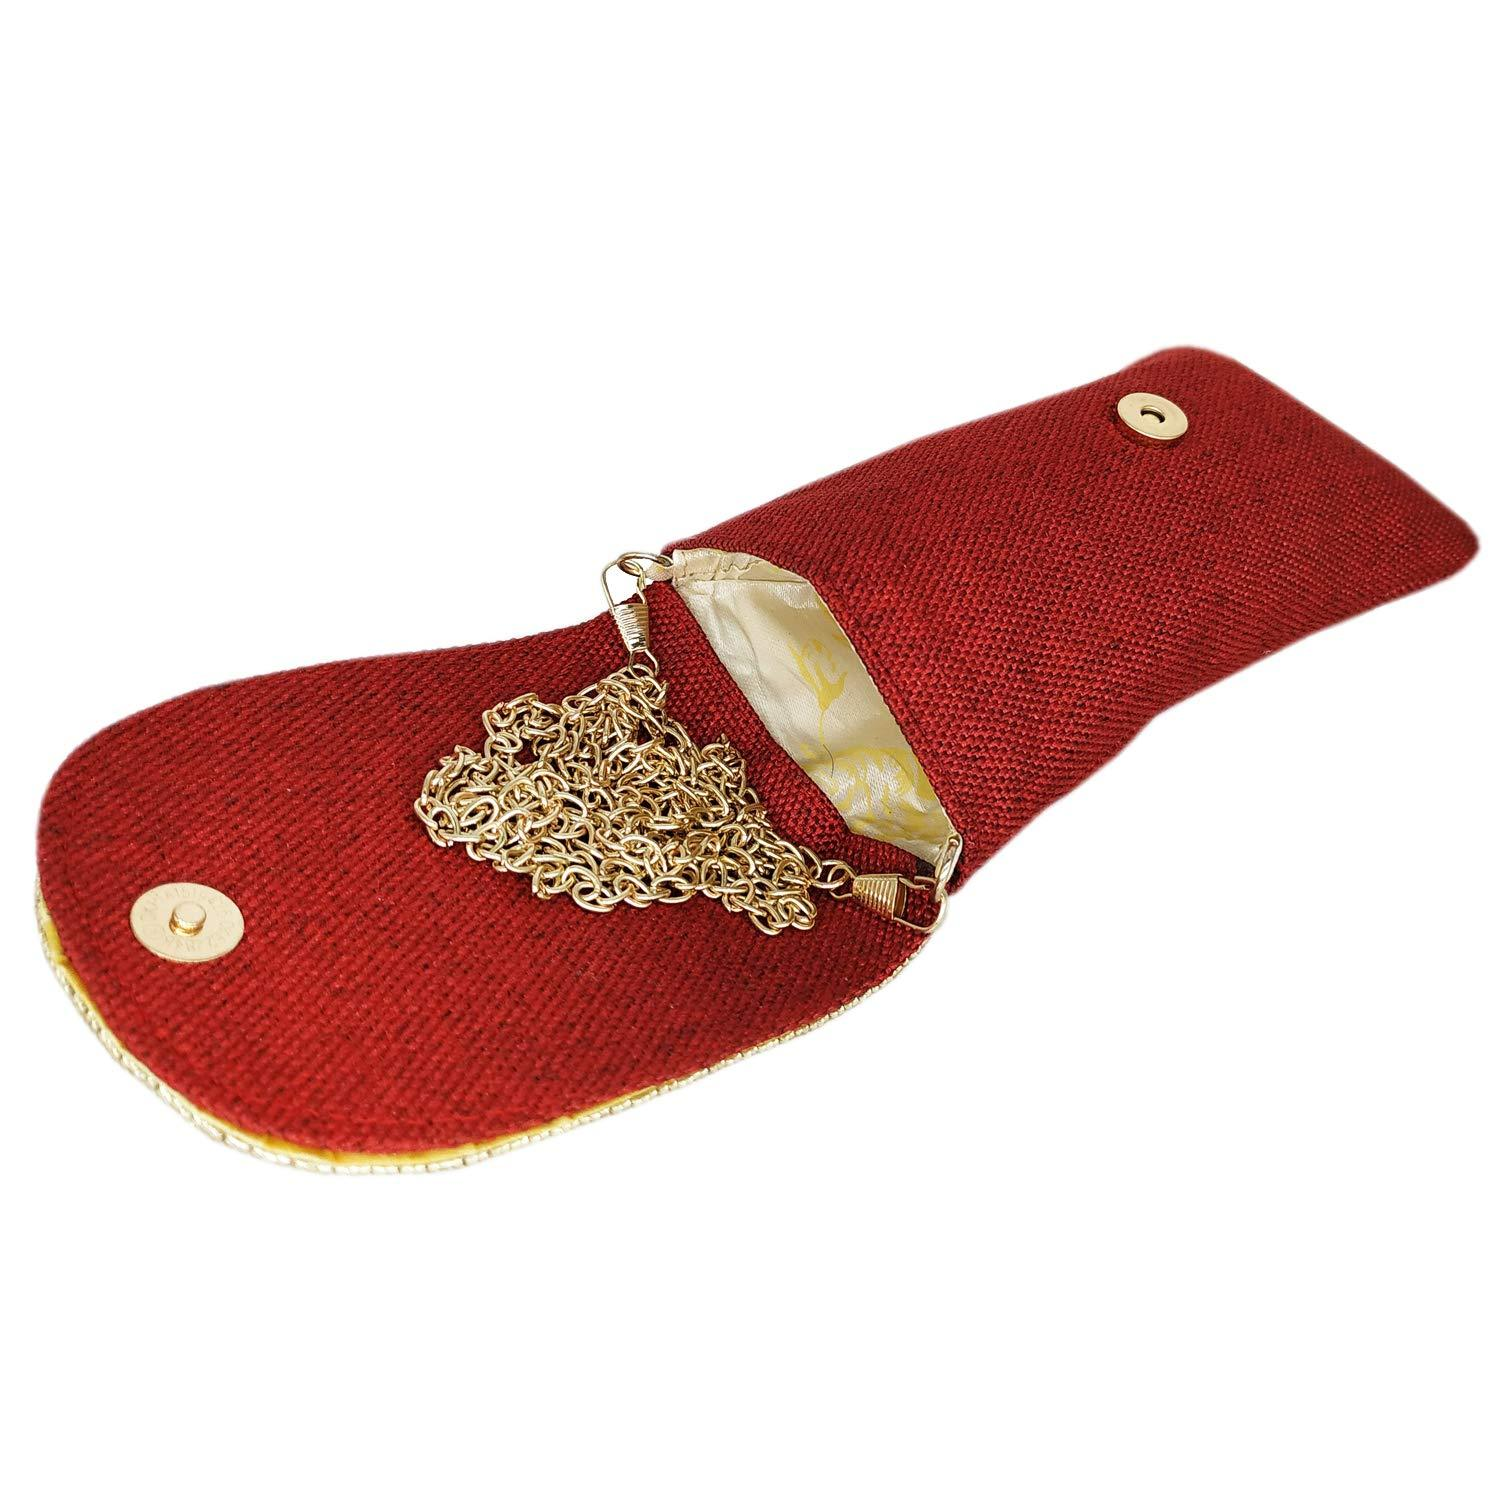 Jute Mobile Pouch with Golden Chain and Waist Clip - Bagaholics Gift